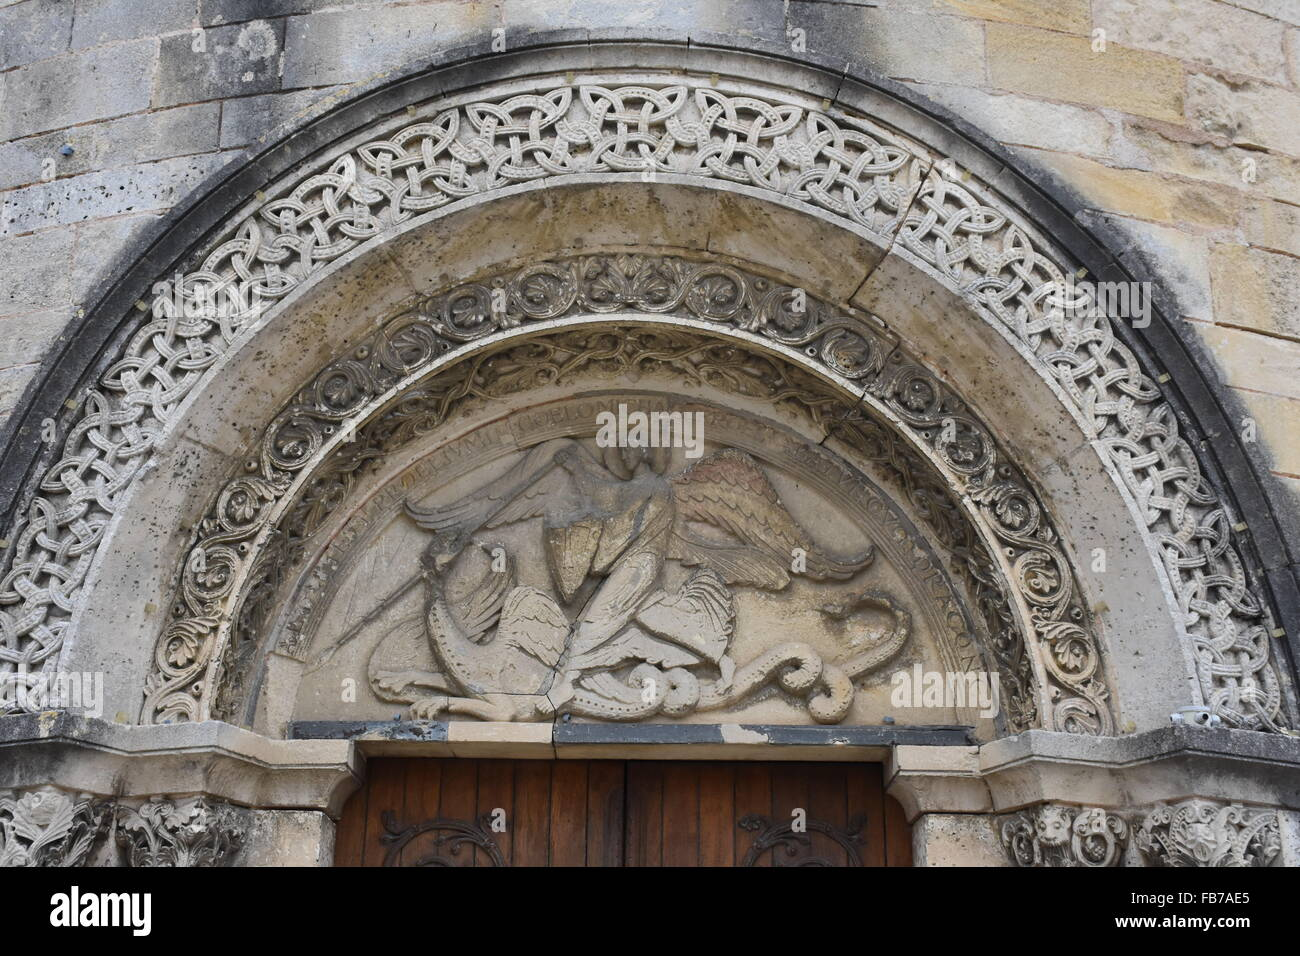 Tympanum of the church of St-Michel in the suburbs of Angouleme (Charente) France showing archangel St Michael - Stock Image